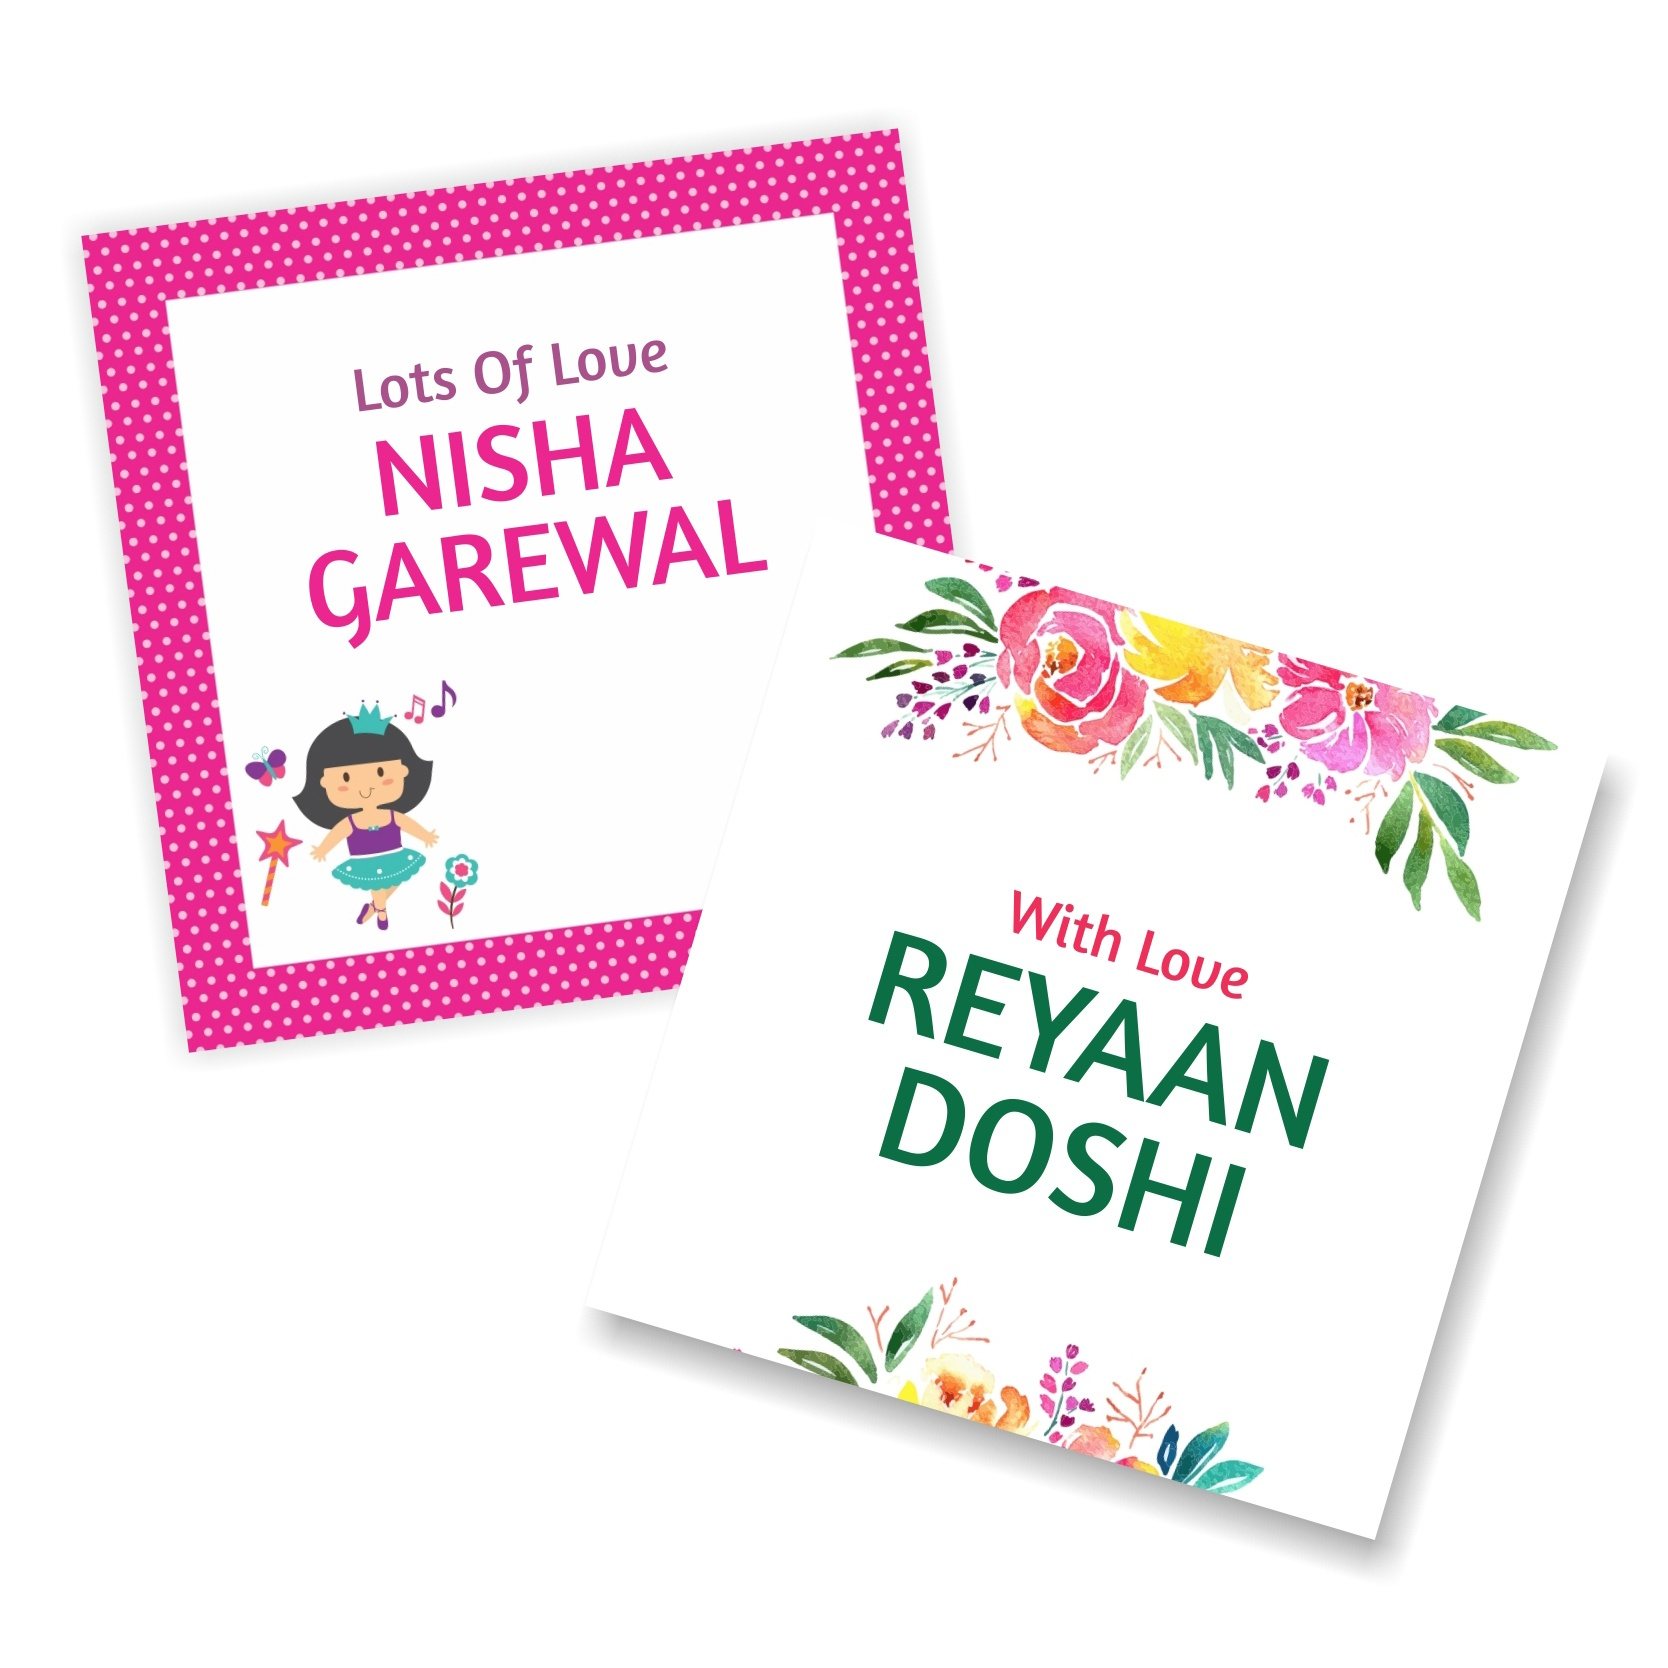 Gift Tags Online India - Personalized Gift Tags Printing | Reliable - Free Online Gift Tags Printable